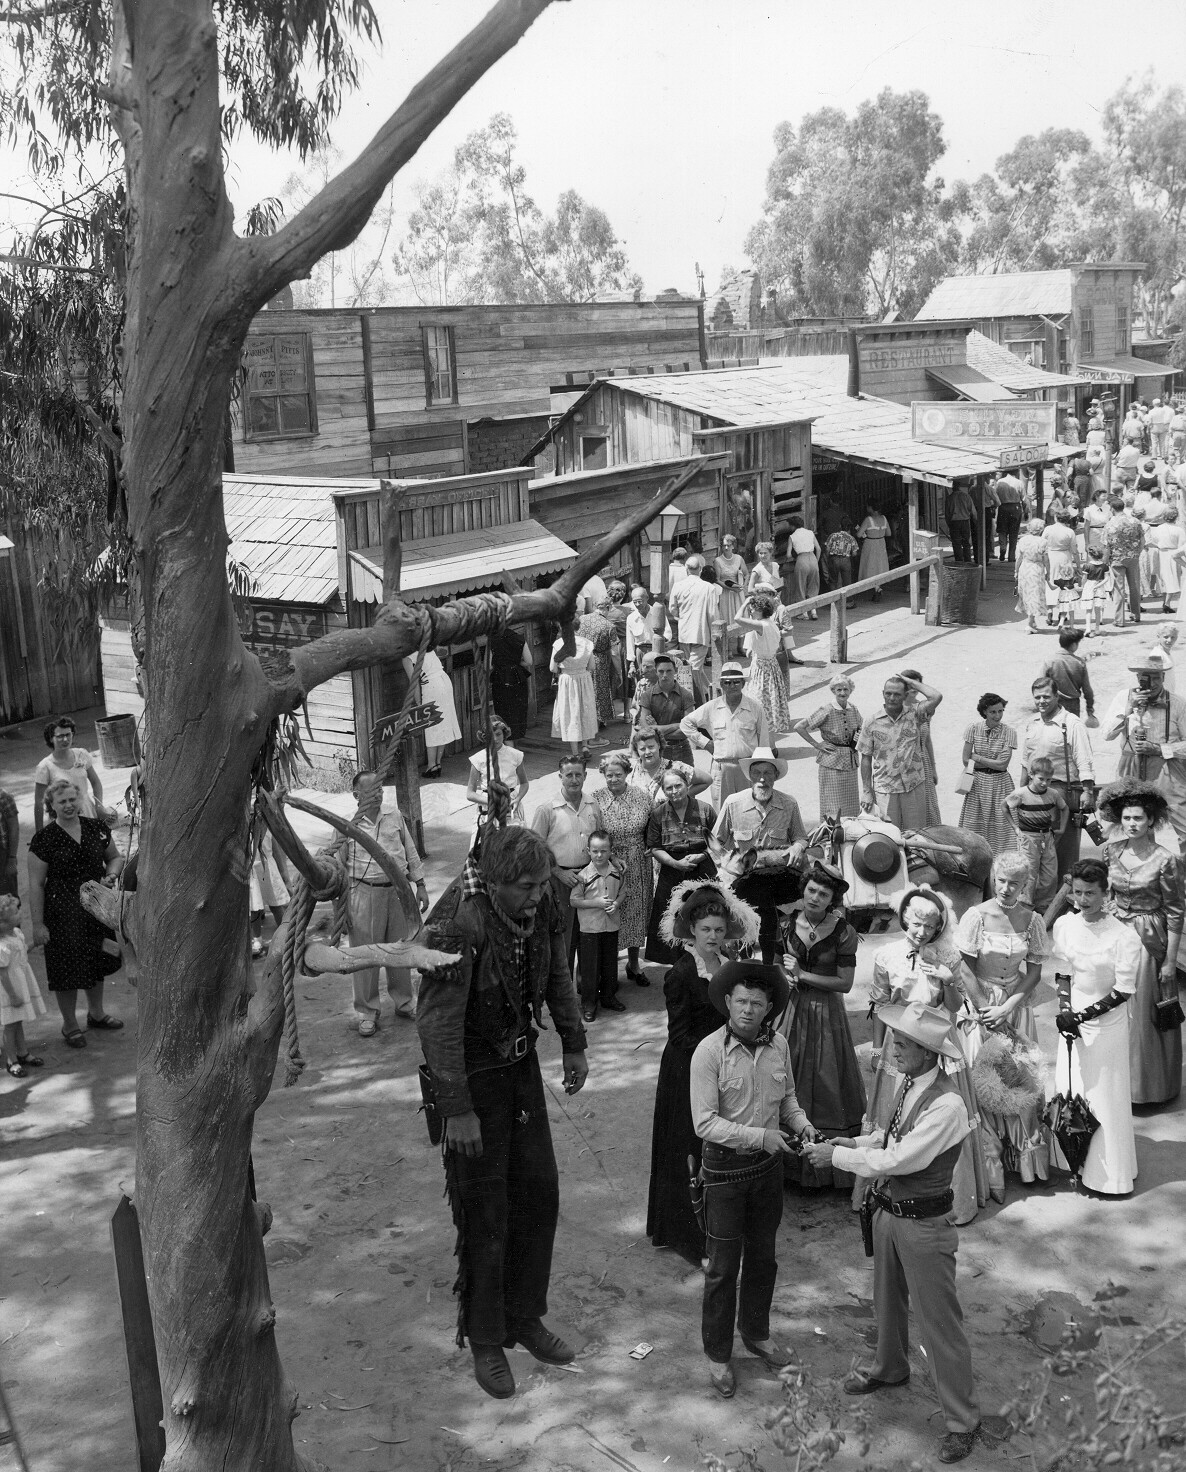 A circa 1950s reenactment of a frontier hanging at Knott's Berry Farm in Buena Park